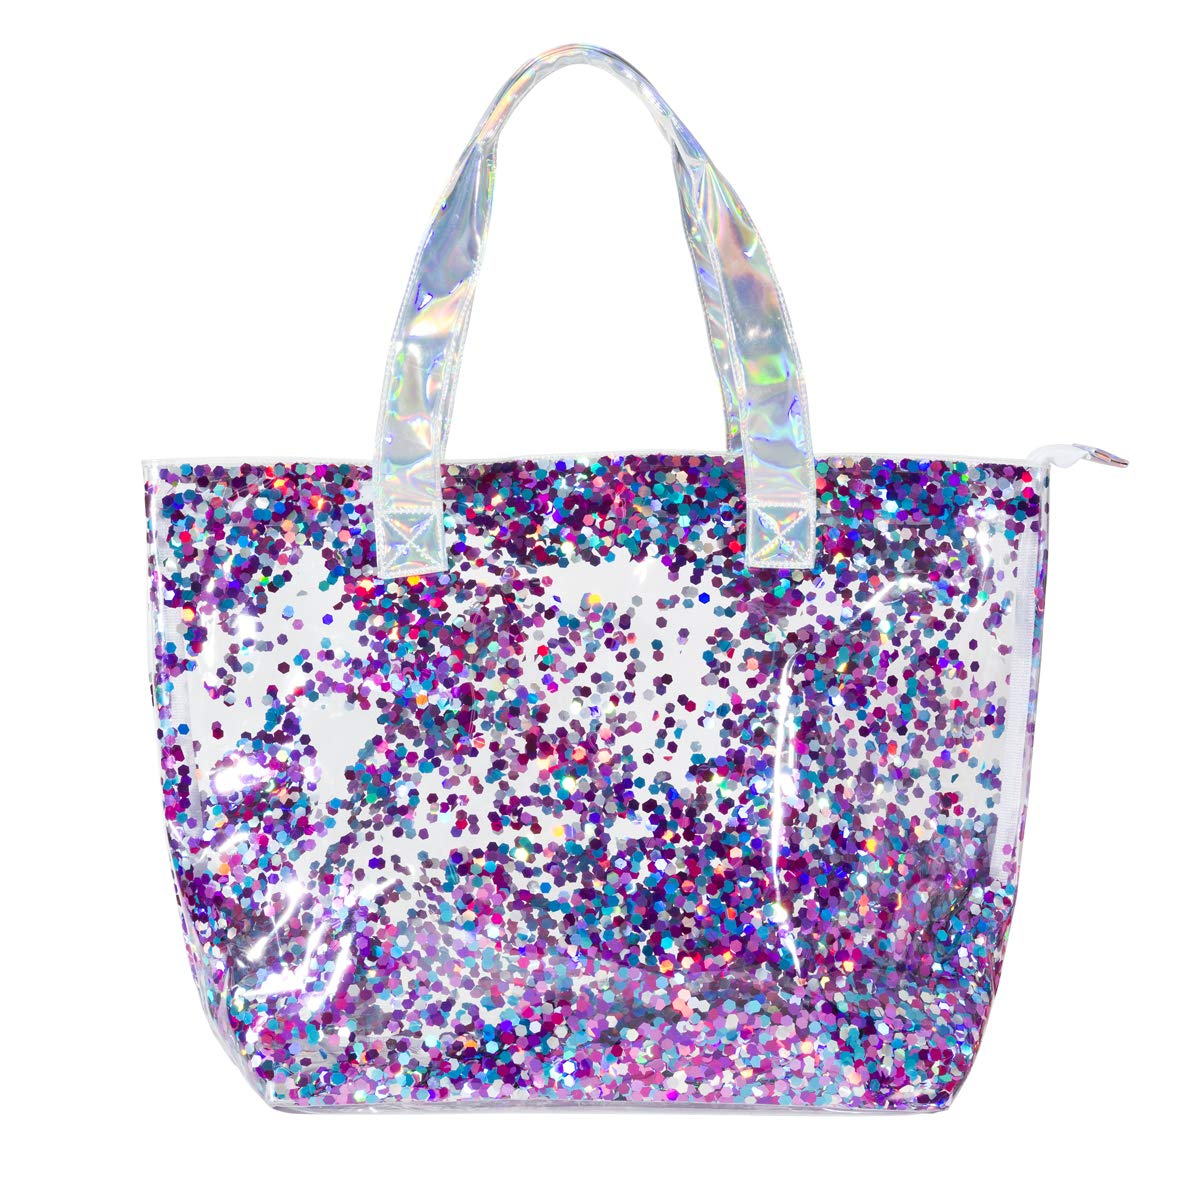 Girls Multi-Use Double Layer PVC Shine Bright Fashion Tote - Filled with Sparkling Confetti - Large 20'' x 14'' Size